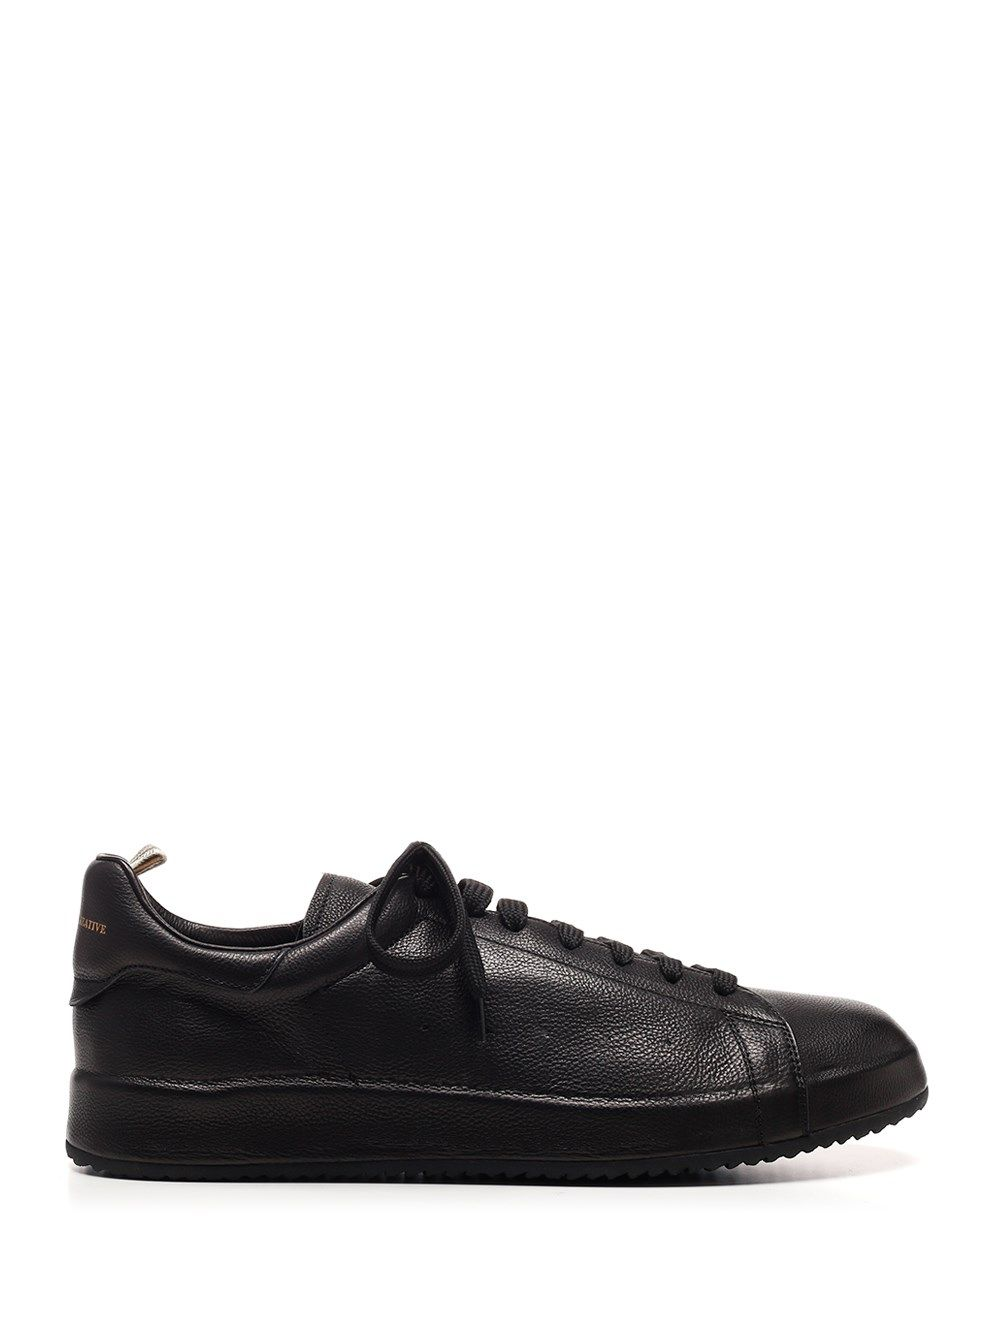 Officine Creative Leathers OFFICINE CREATIVE MEN'S OCUTWAC001GIANOBLAC BLACK OTHER MATERIALS SNEAKERS